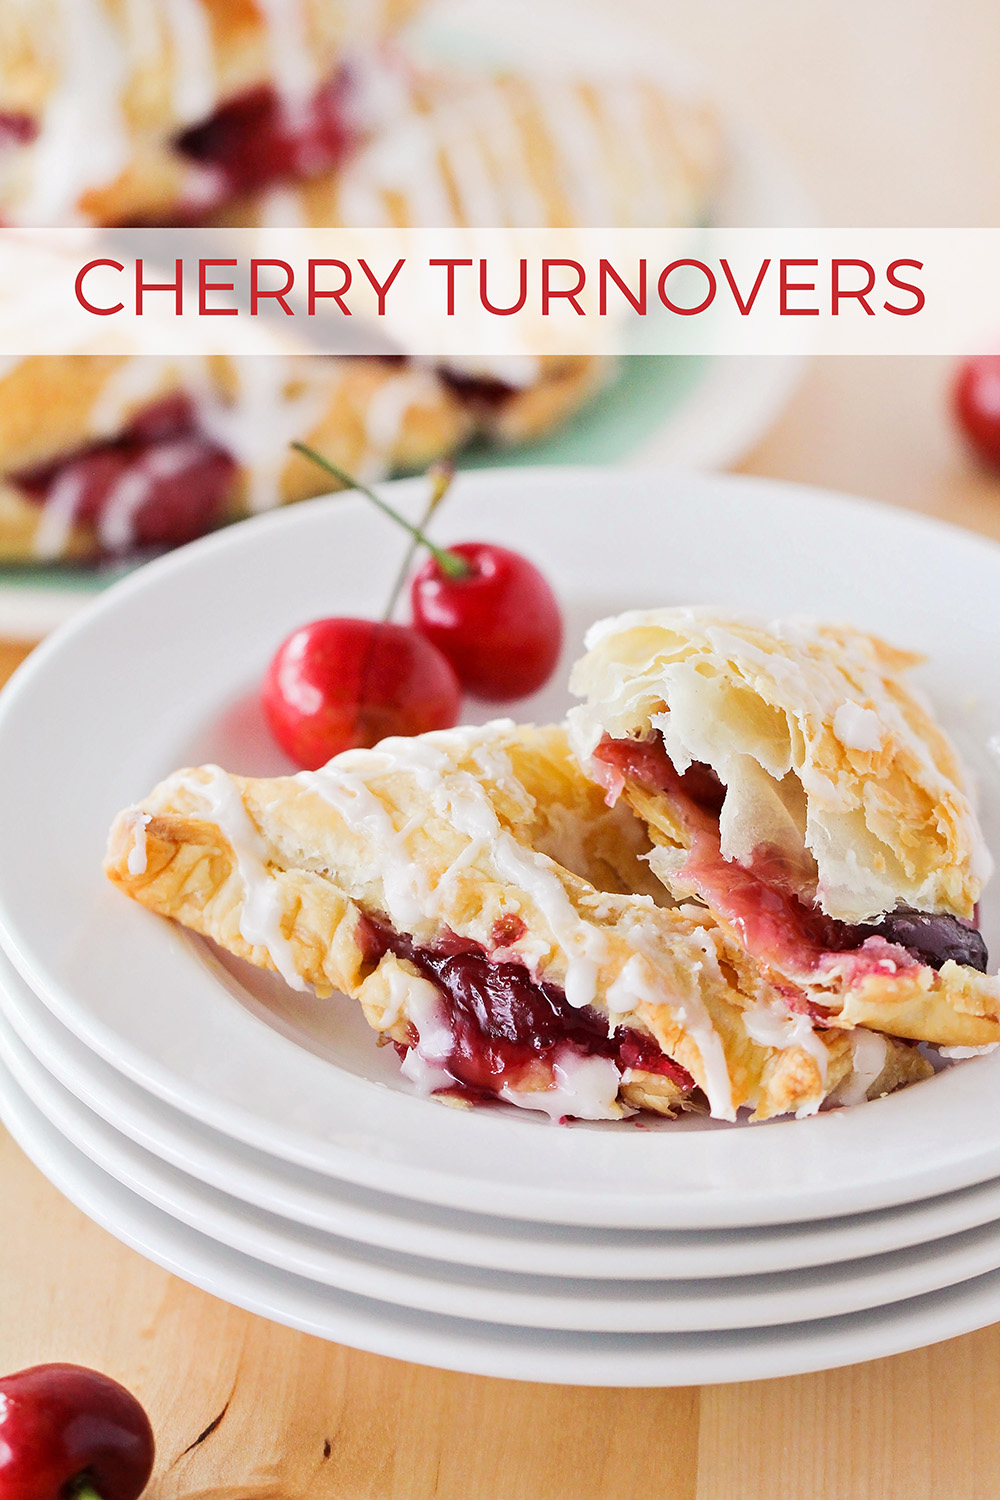 These flaky and sweet cherry turnovers are bursting with fresh cherries and drizzled with a sweet almond glaze. Perfect for breakfast, brunch, or dessert!